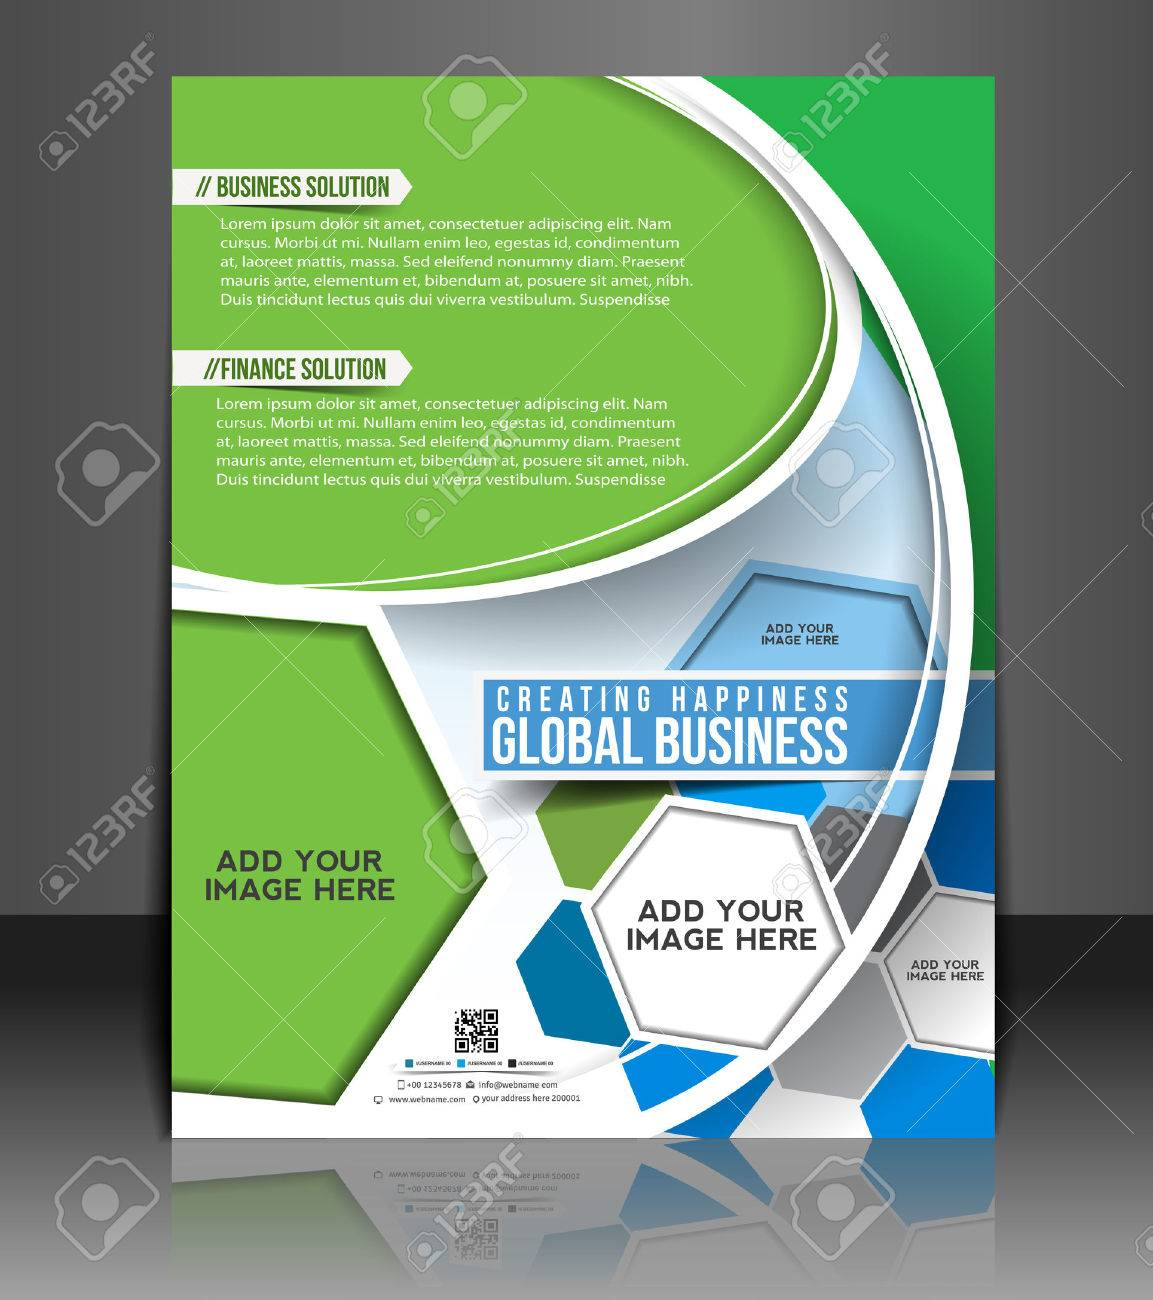 global business flyer poster template design royalty global business flyer poster template design stock vector 26787689